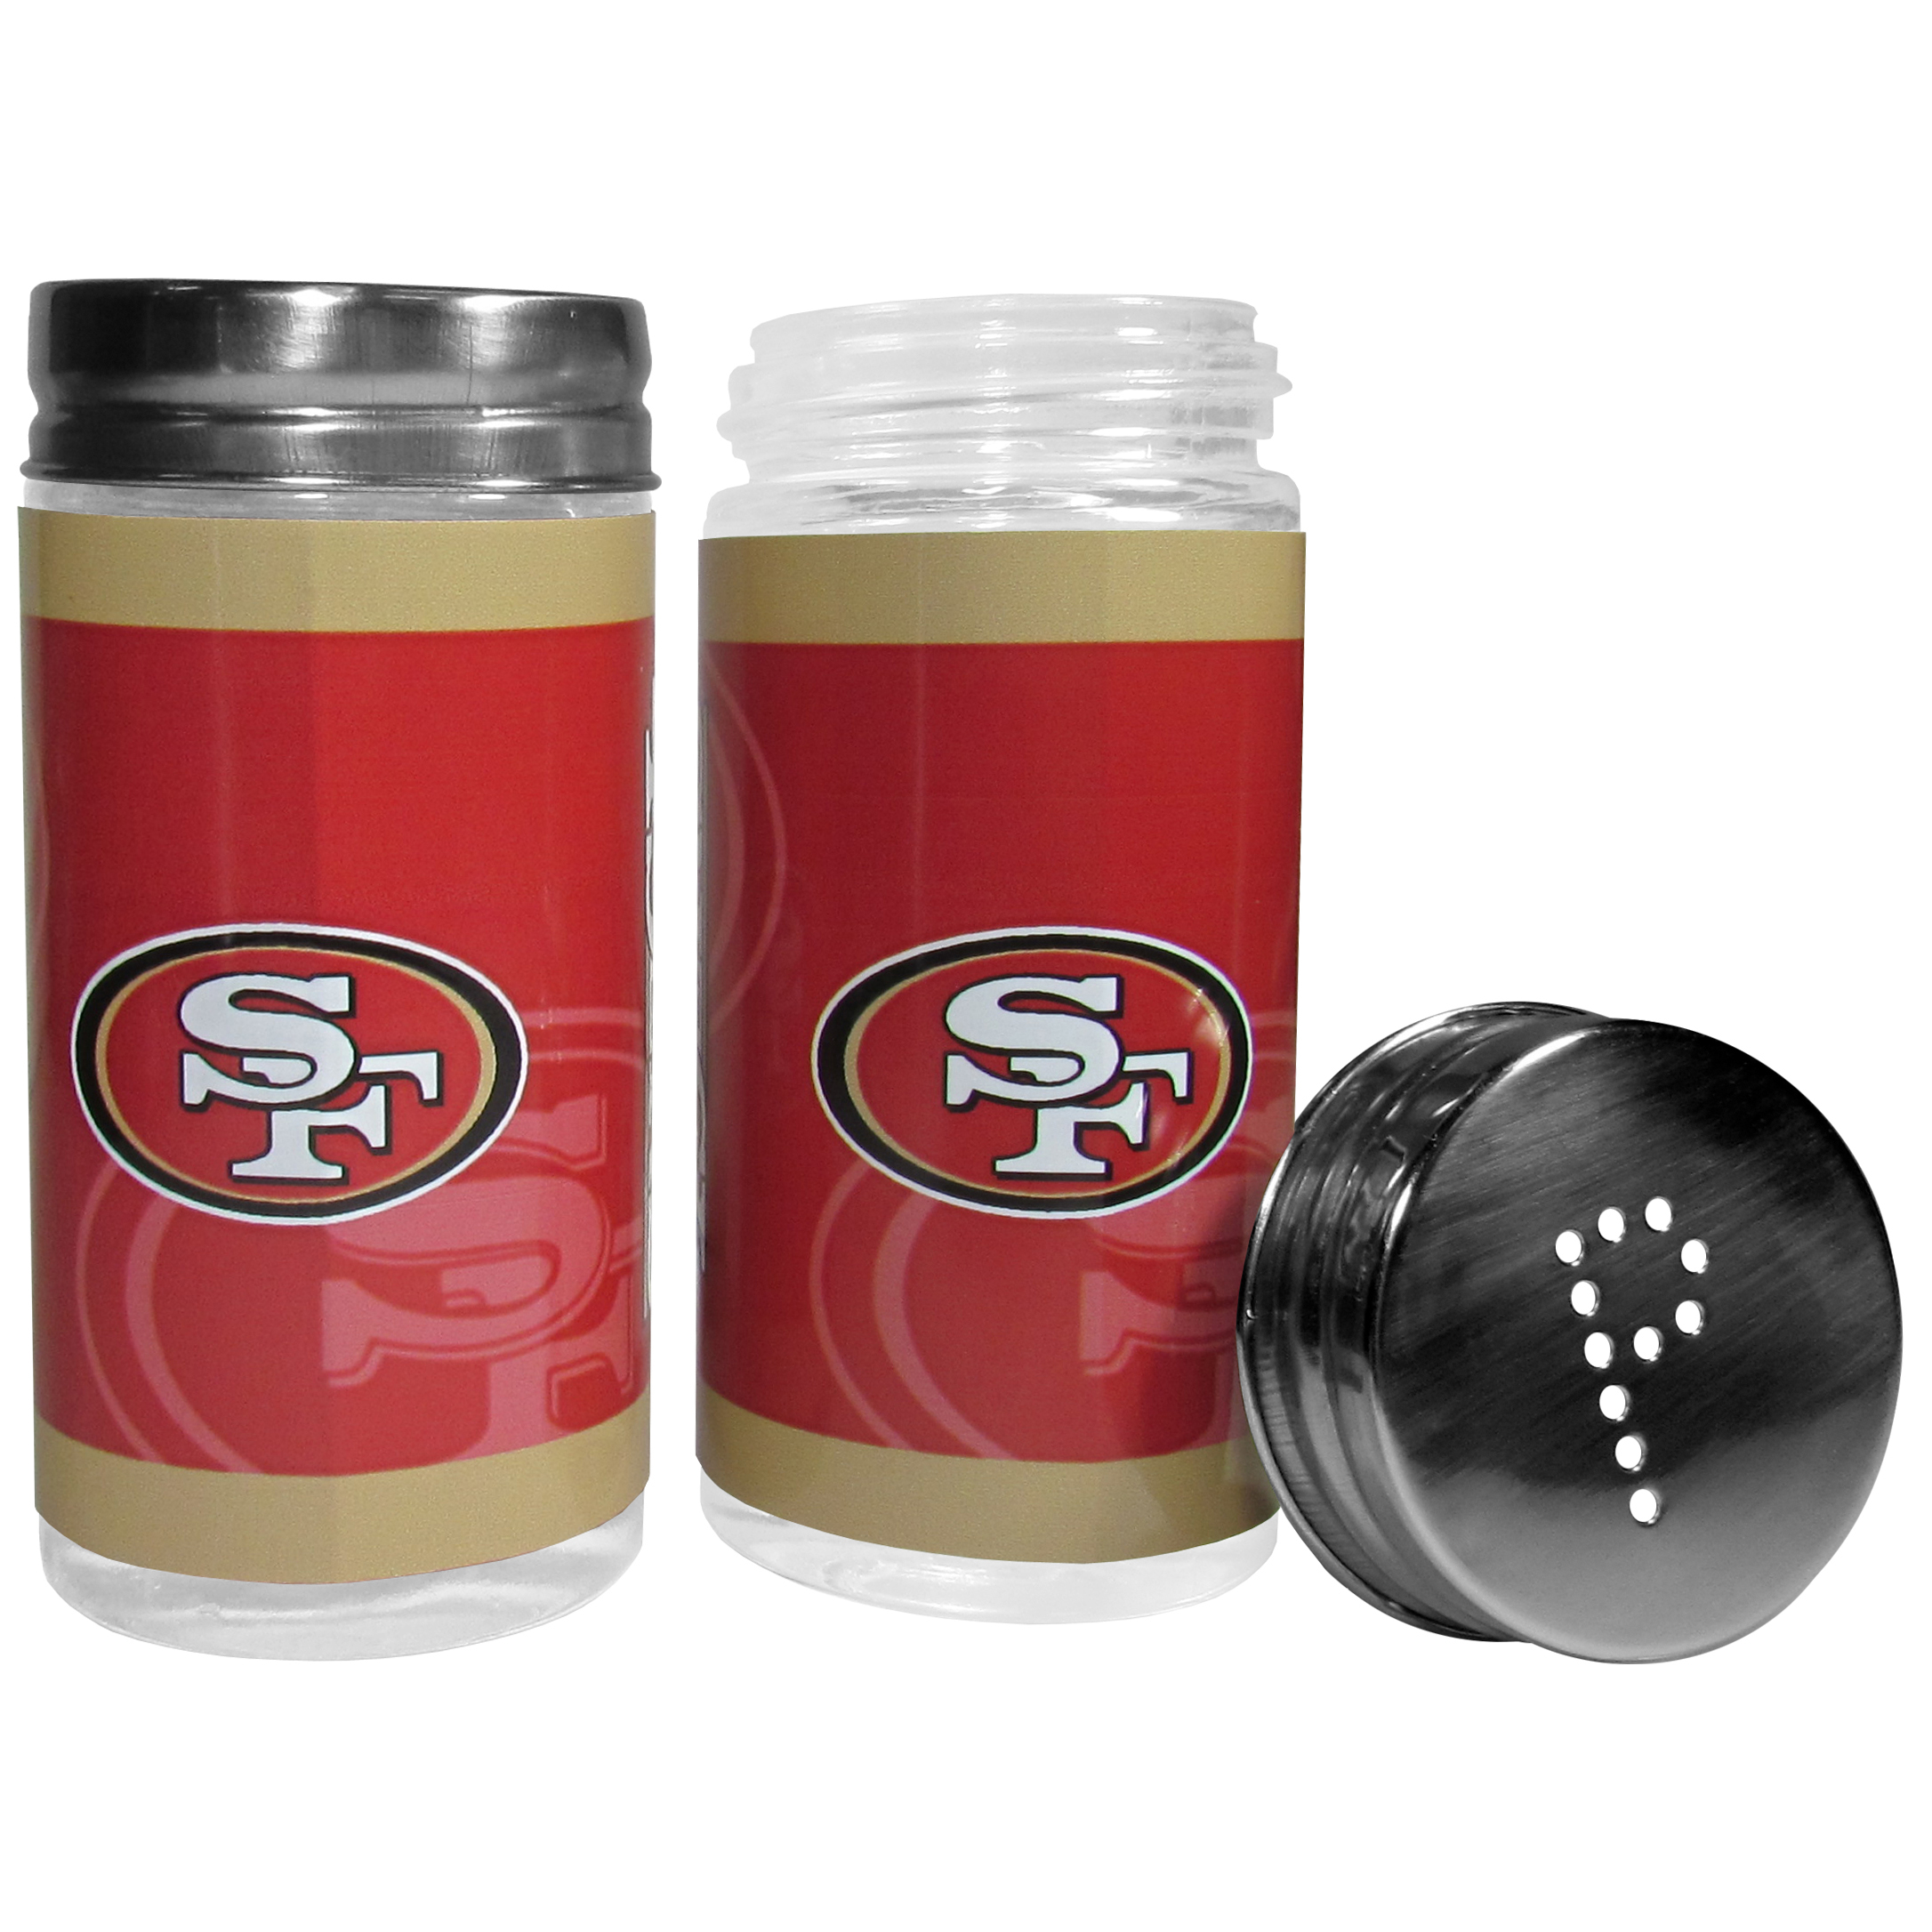 San Francisco 49ers Tailgater Salt & Pepper Shakers - No tailgate party is complete without your San Francisco 49ers salt & pepper shakers featuring bright team graphics. The glass shakers are 3.75 inches tall and the screw top lids have holes that spell out P and S. These team shakers are a great grill accessory whether you are barbecuing on the patio, picnicing or having a game day party.